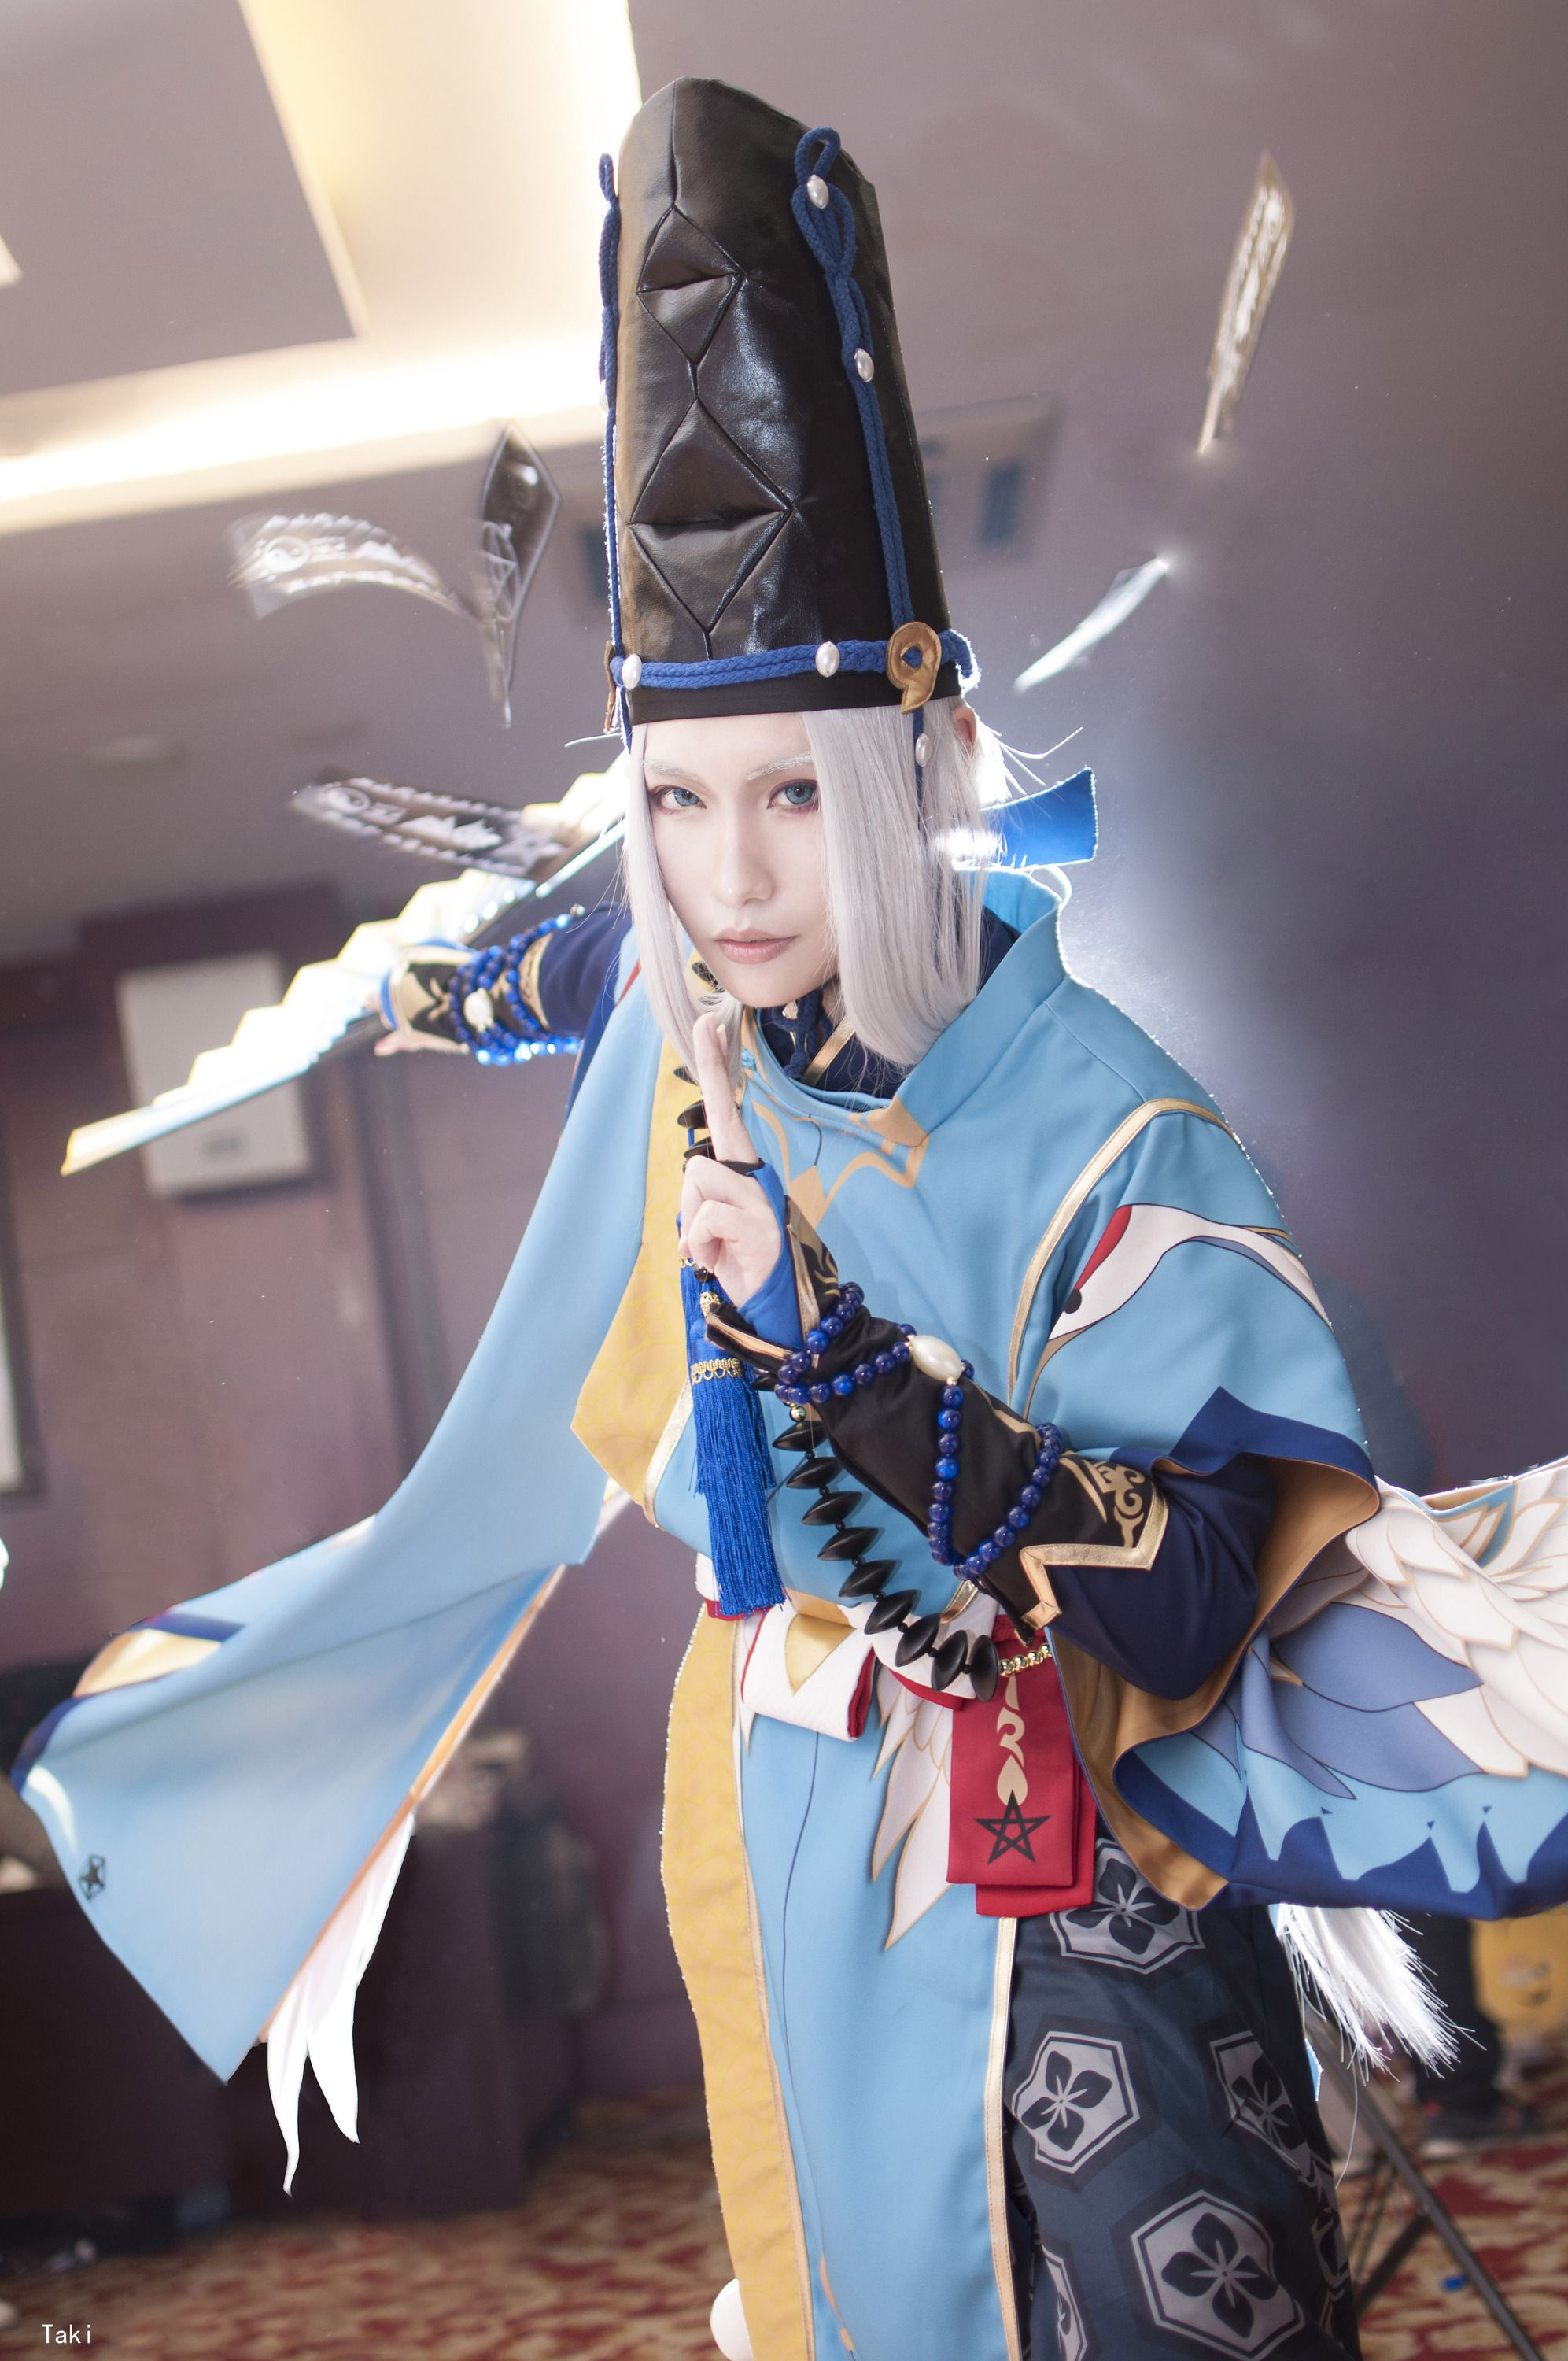 Taki (Taki泷三) as Abe No Seimei of Onmyoji Mobile Games